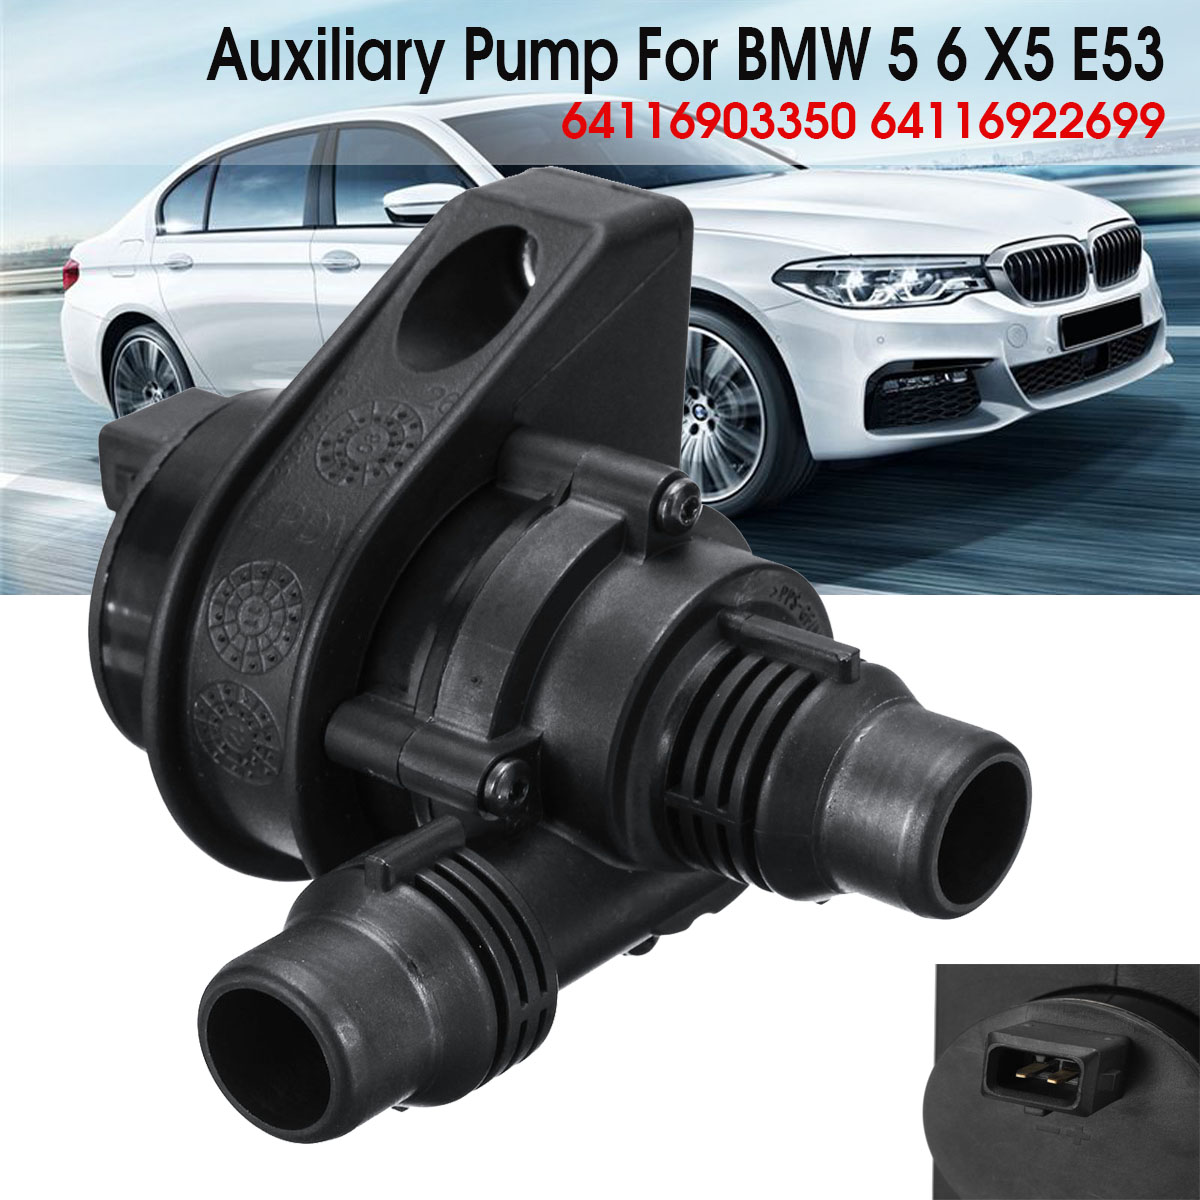 Cooling Auxiliary Water Pump 64116903350 64116922699 For BMW 5 6 Series X5 E53 E64 E60